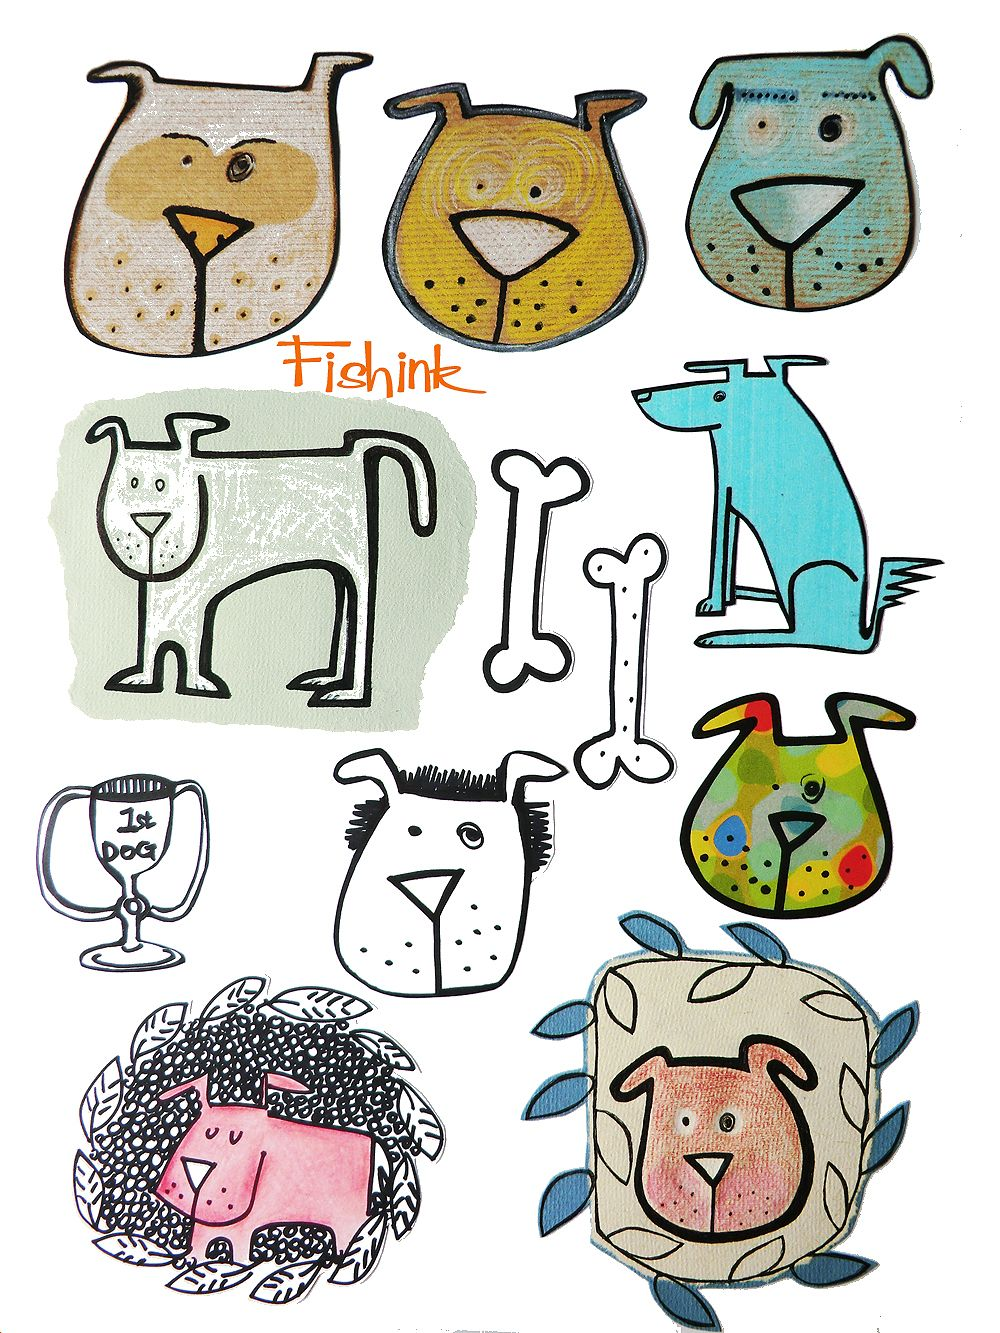 Fishinkblog 7884 Fishink Sketches 3 Check out my blog ramblings and arty chat here www.fishinkblog.w... and my stationery here www.fishink.co.uk , illustration here www.fishink.etsy.com and here carbonmade.com/.... Happy Pinning ! :)